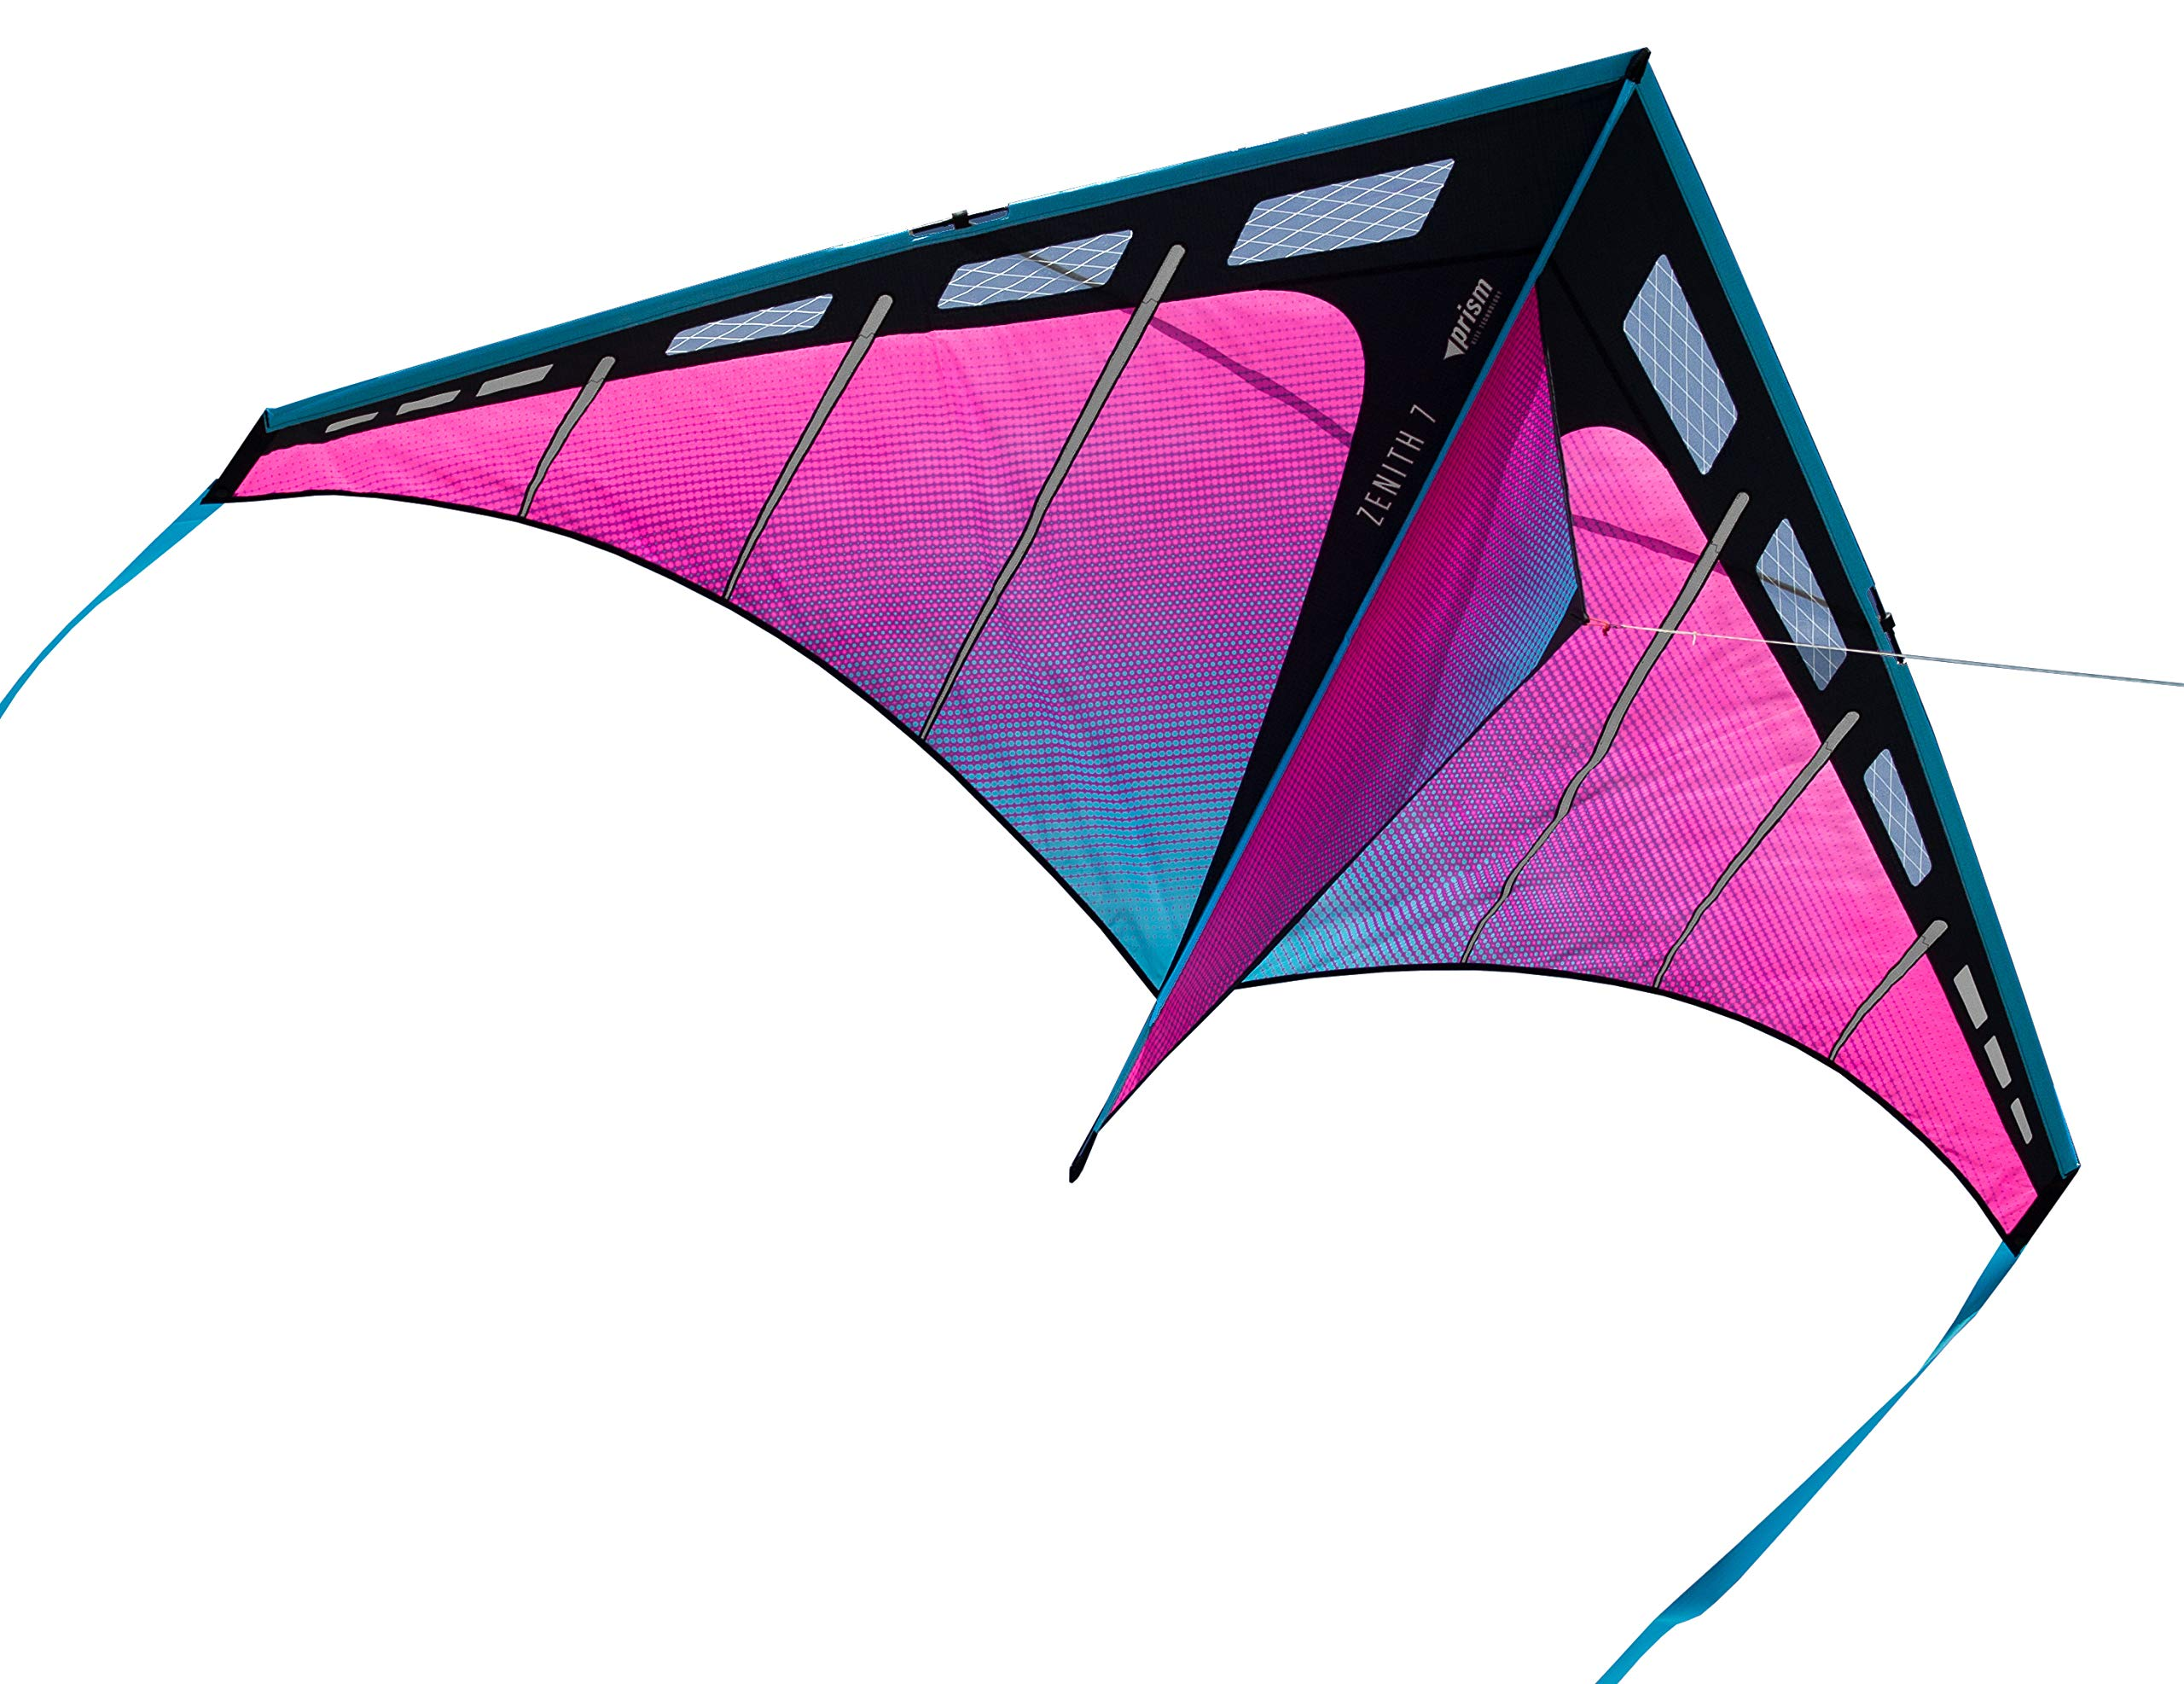 Prism Kite Technology Zenith 7 Ultraviolet Single Line Kite, Ready to Fly with line, Winder and Travel Sleeve